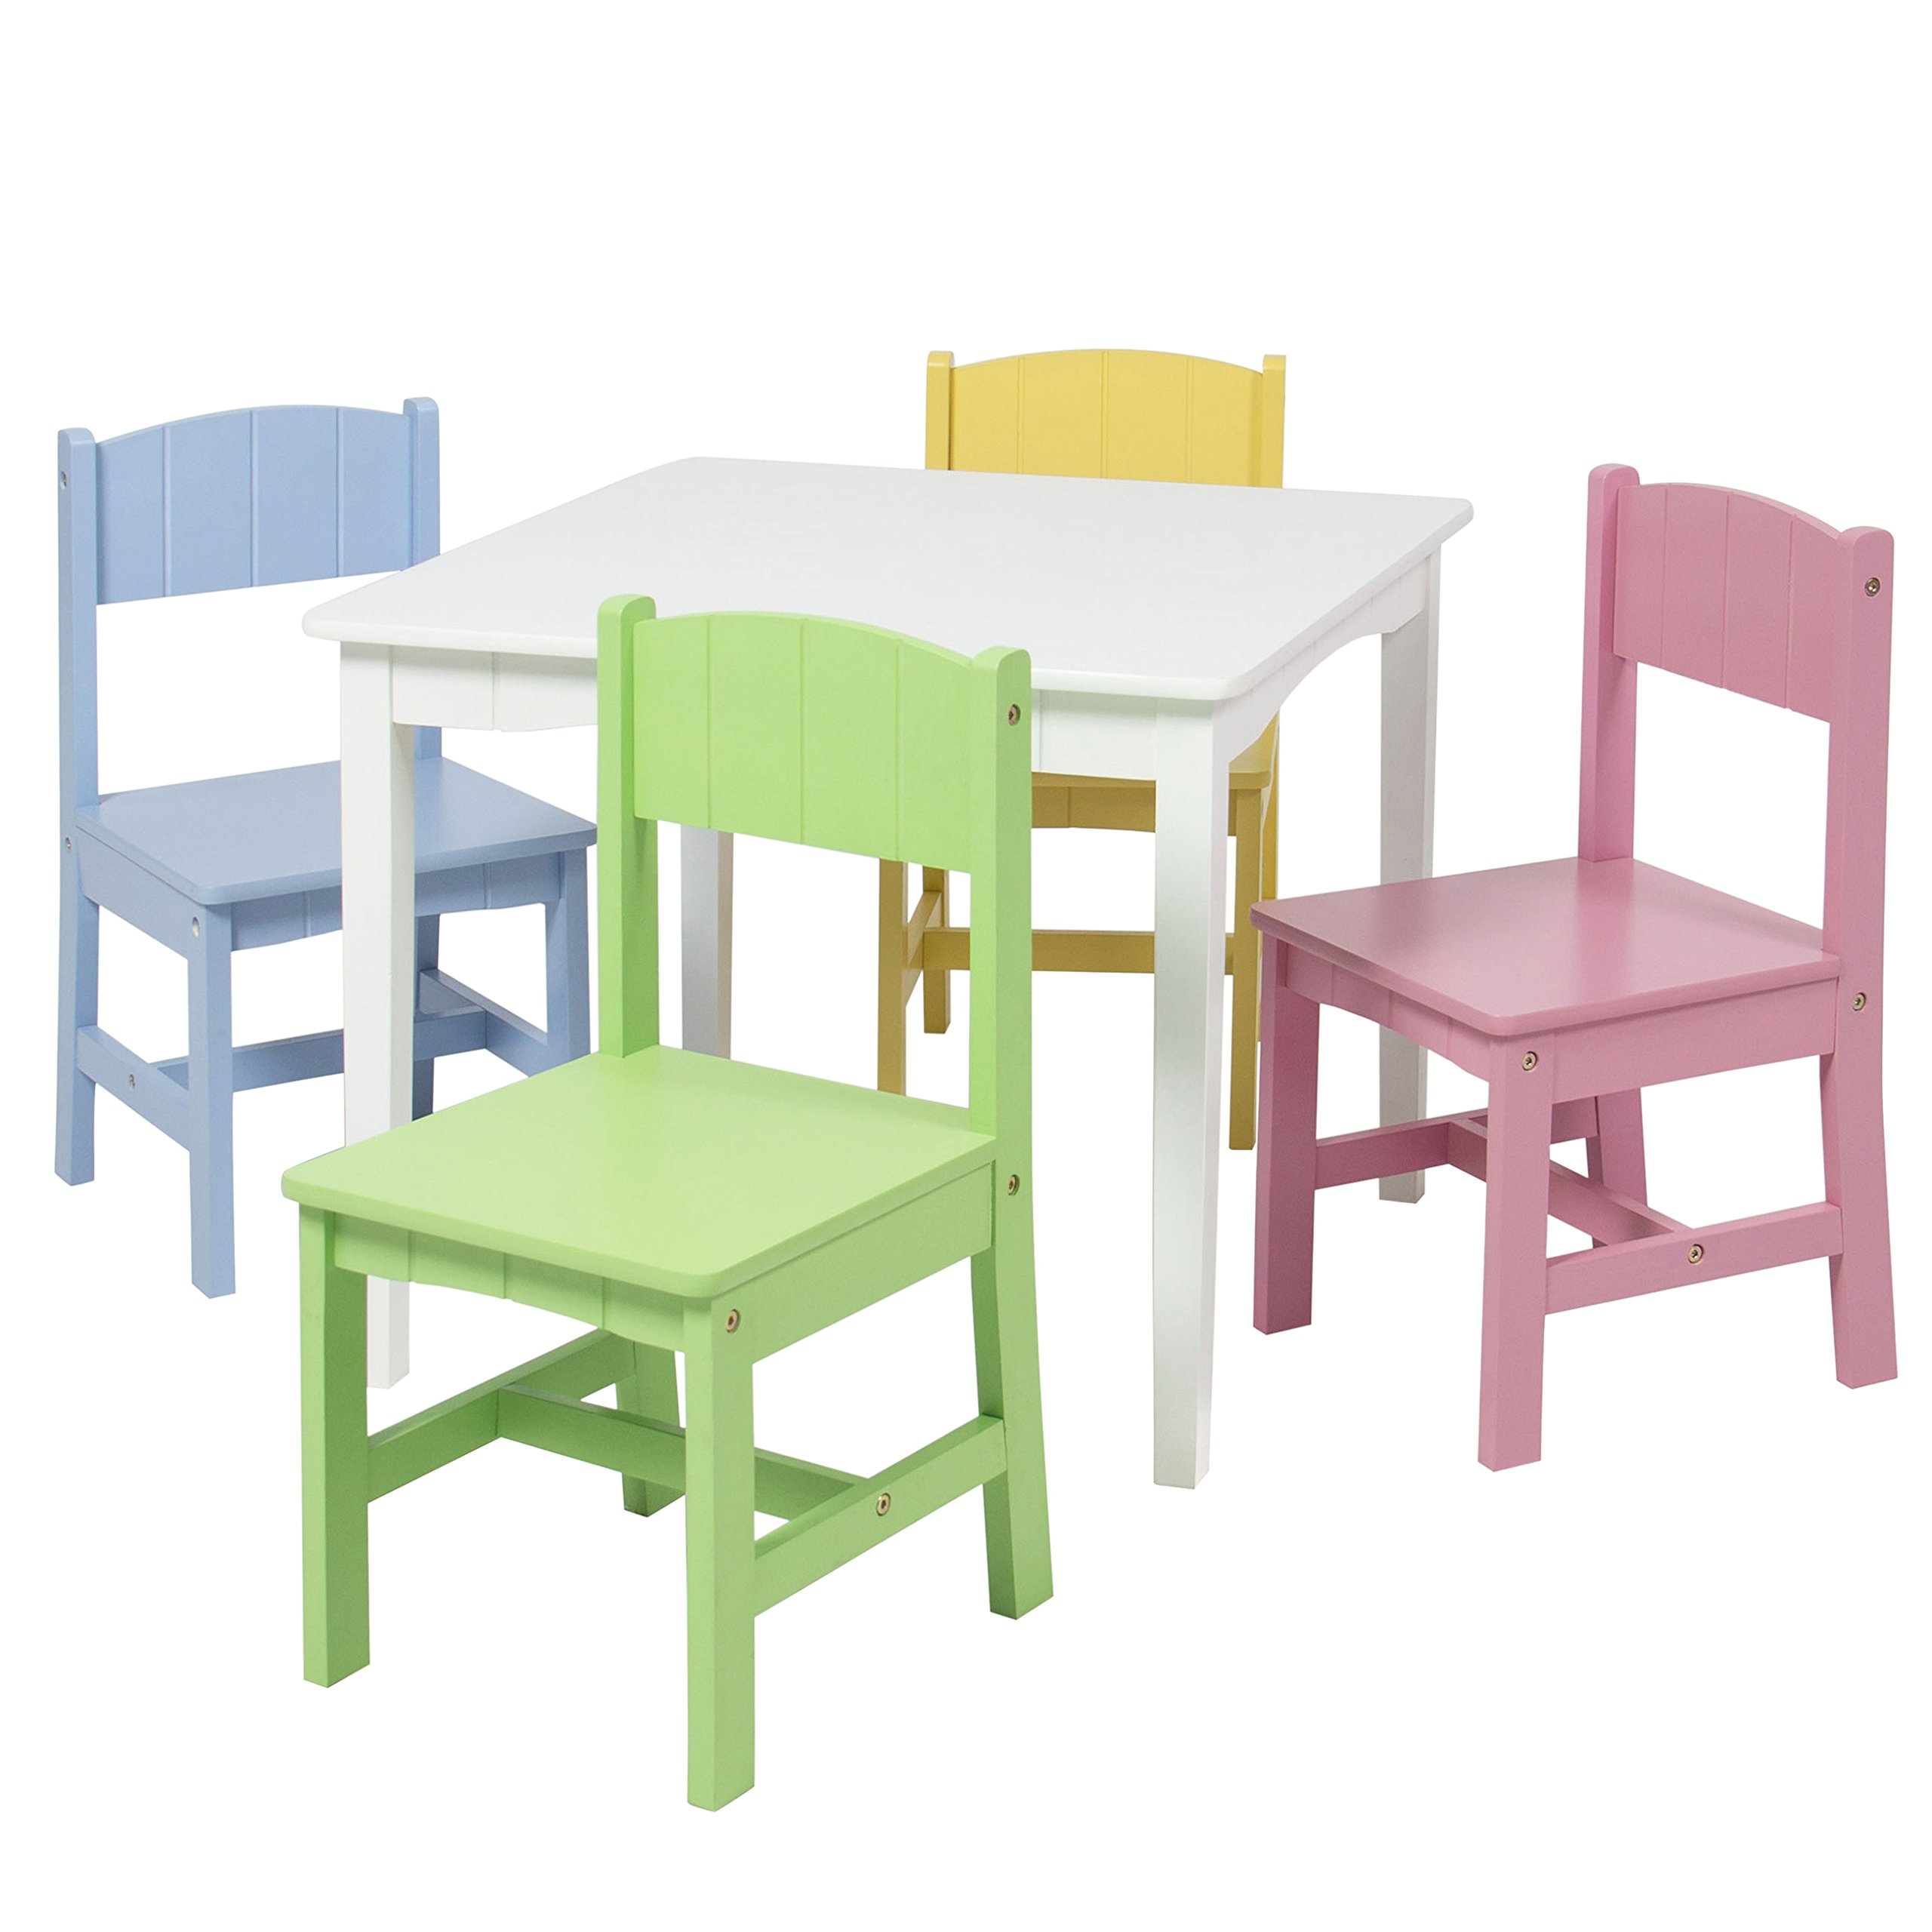 Best Choice Products Wooden Kids Table And 4 Chairs Set Furniture Play Area School Home